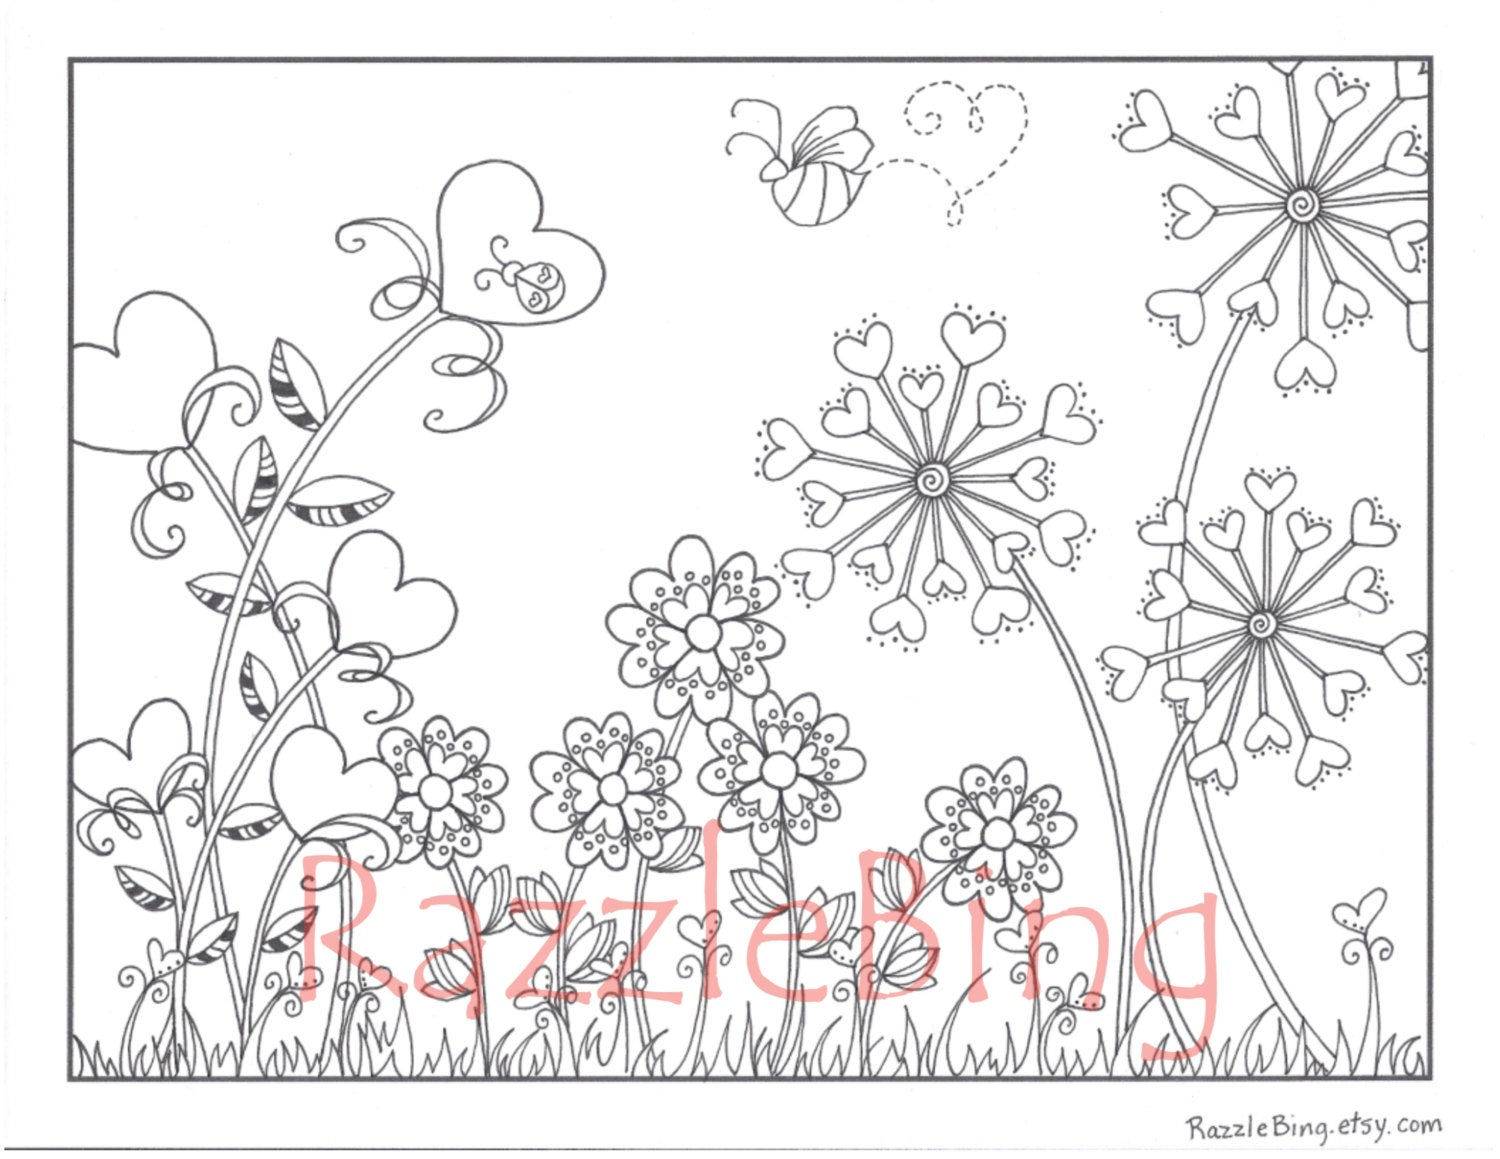 Diy Valentine's Day Printable Coloring Page-Zentangle | Etsy - Printable Razzle Puzzles